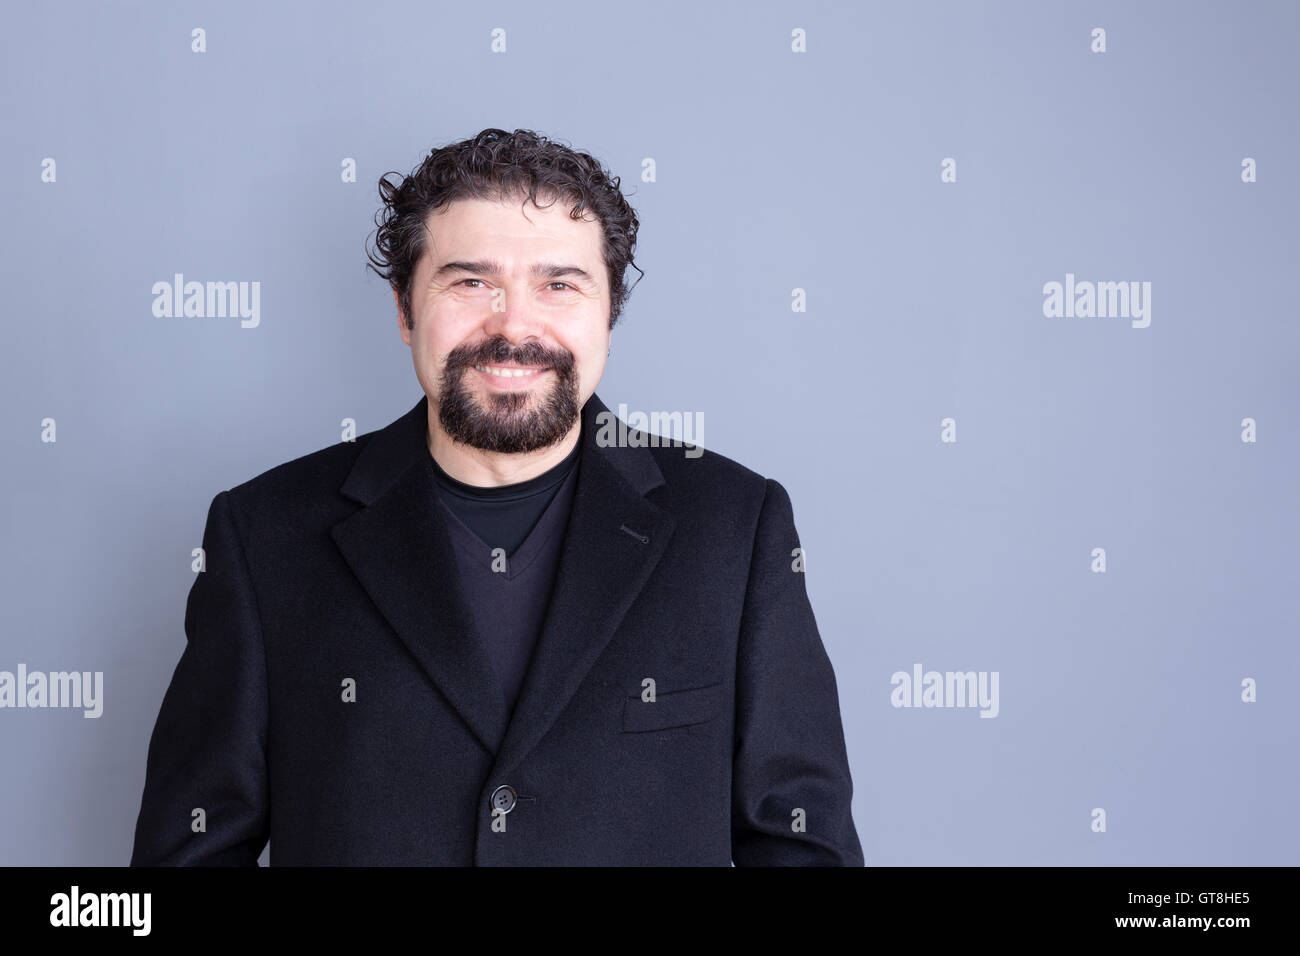 Single smiling handsome dark haired and bearded middle aged man wearing black shirt and blazer over gray background - Stock Image